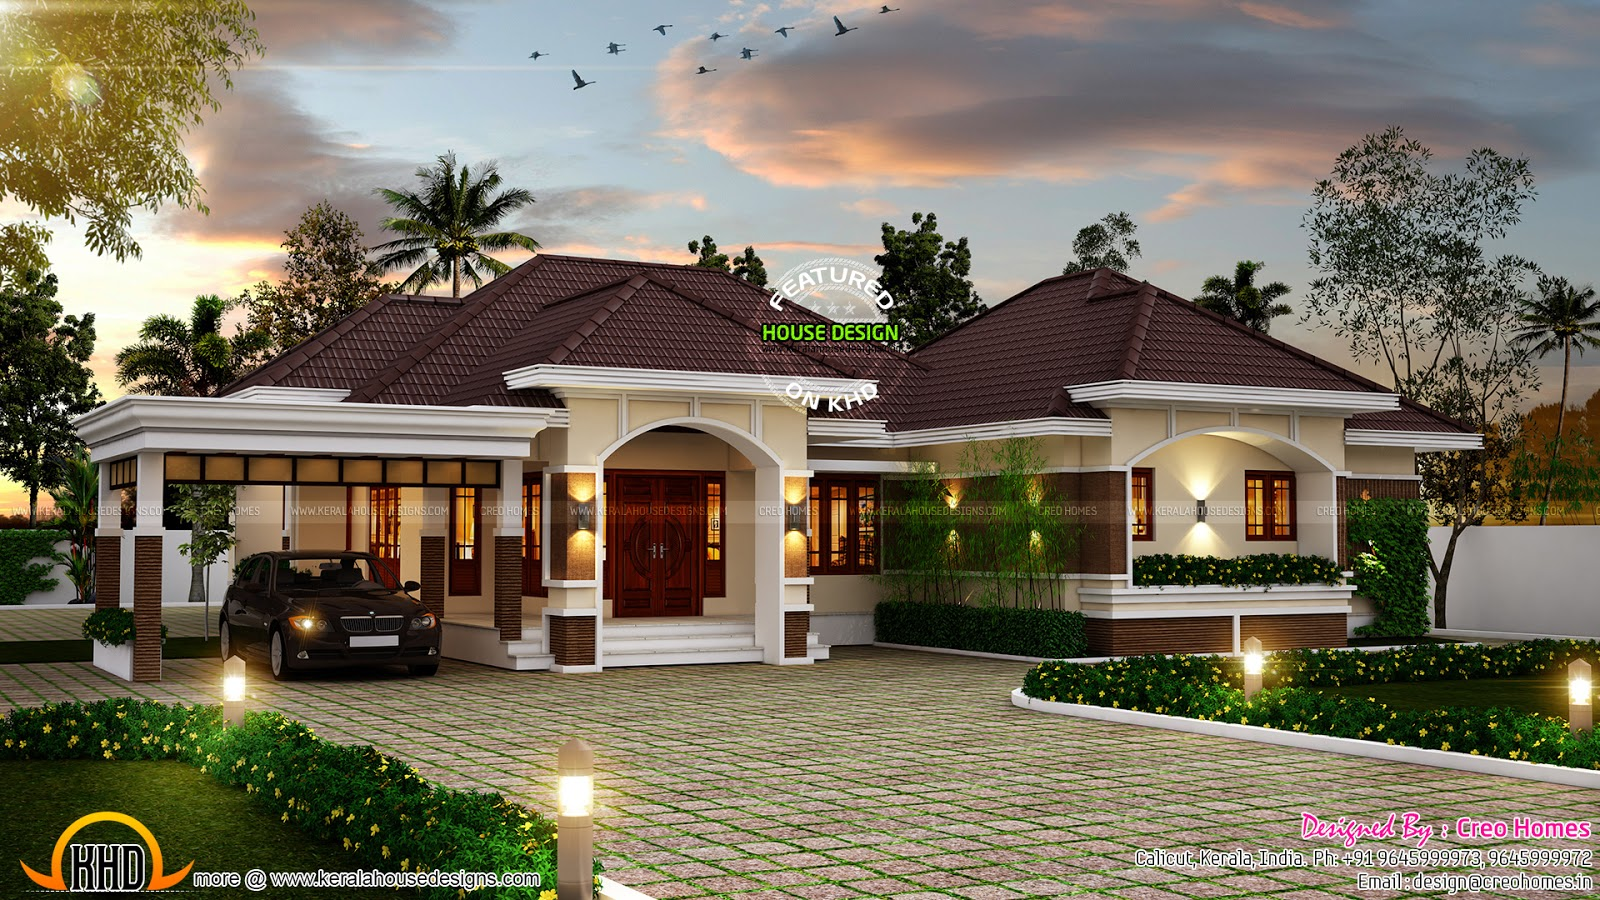 Outstanding bungalow in kerala kerala home design and for 4 bedroom house plans kerala style architect